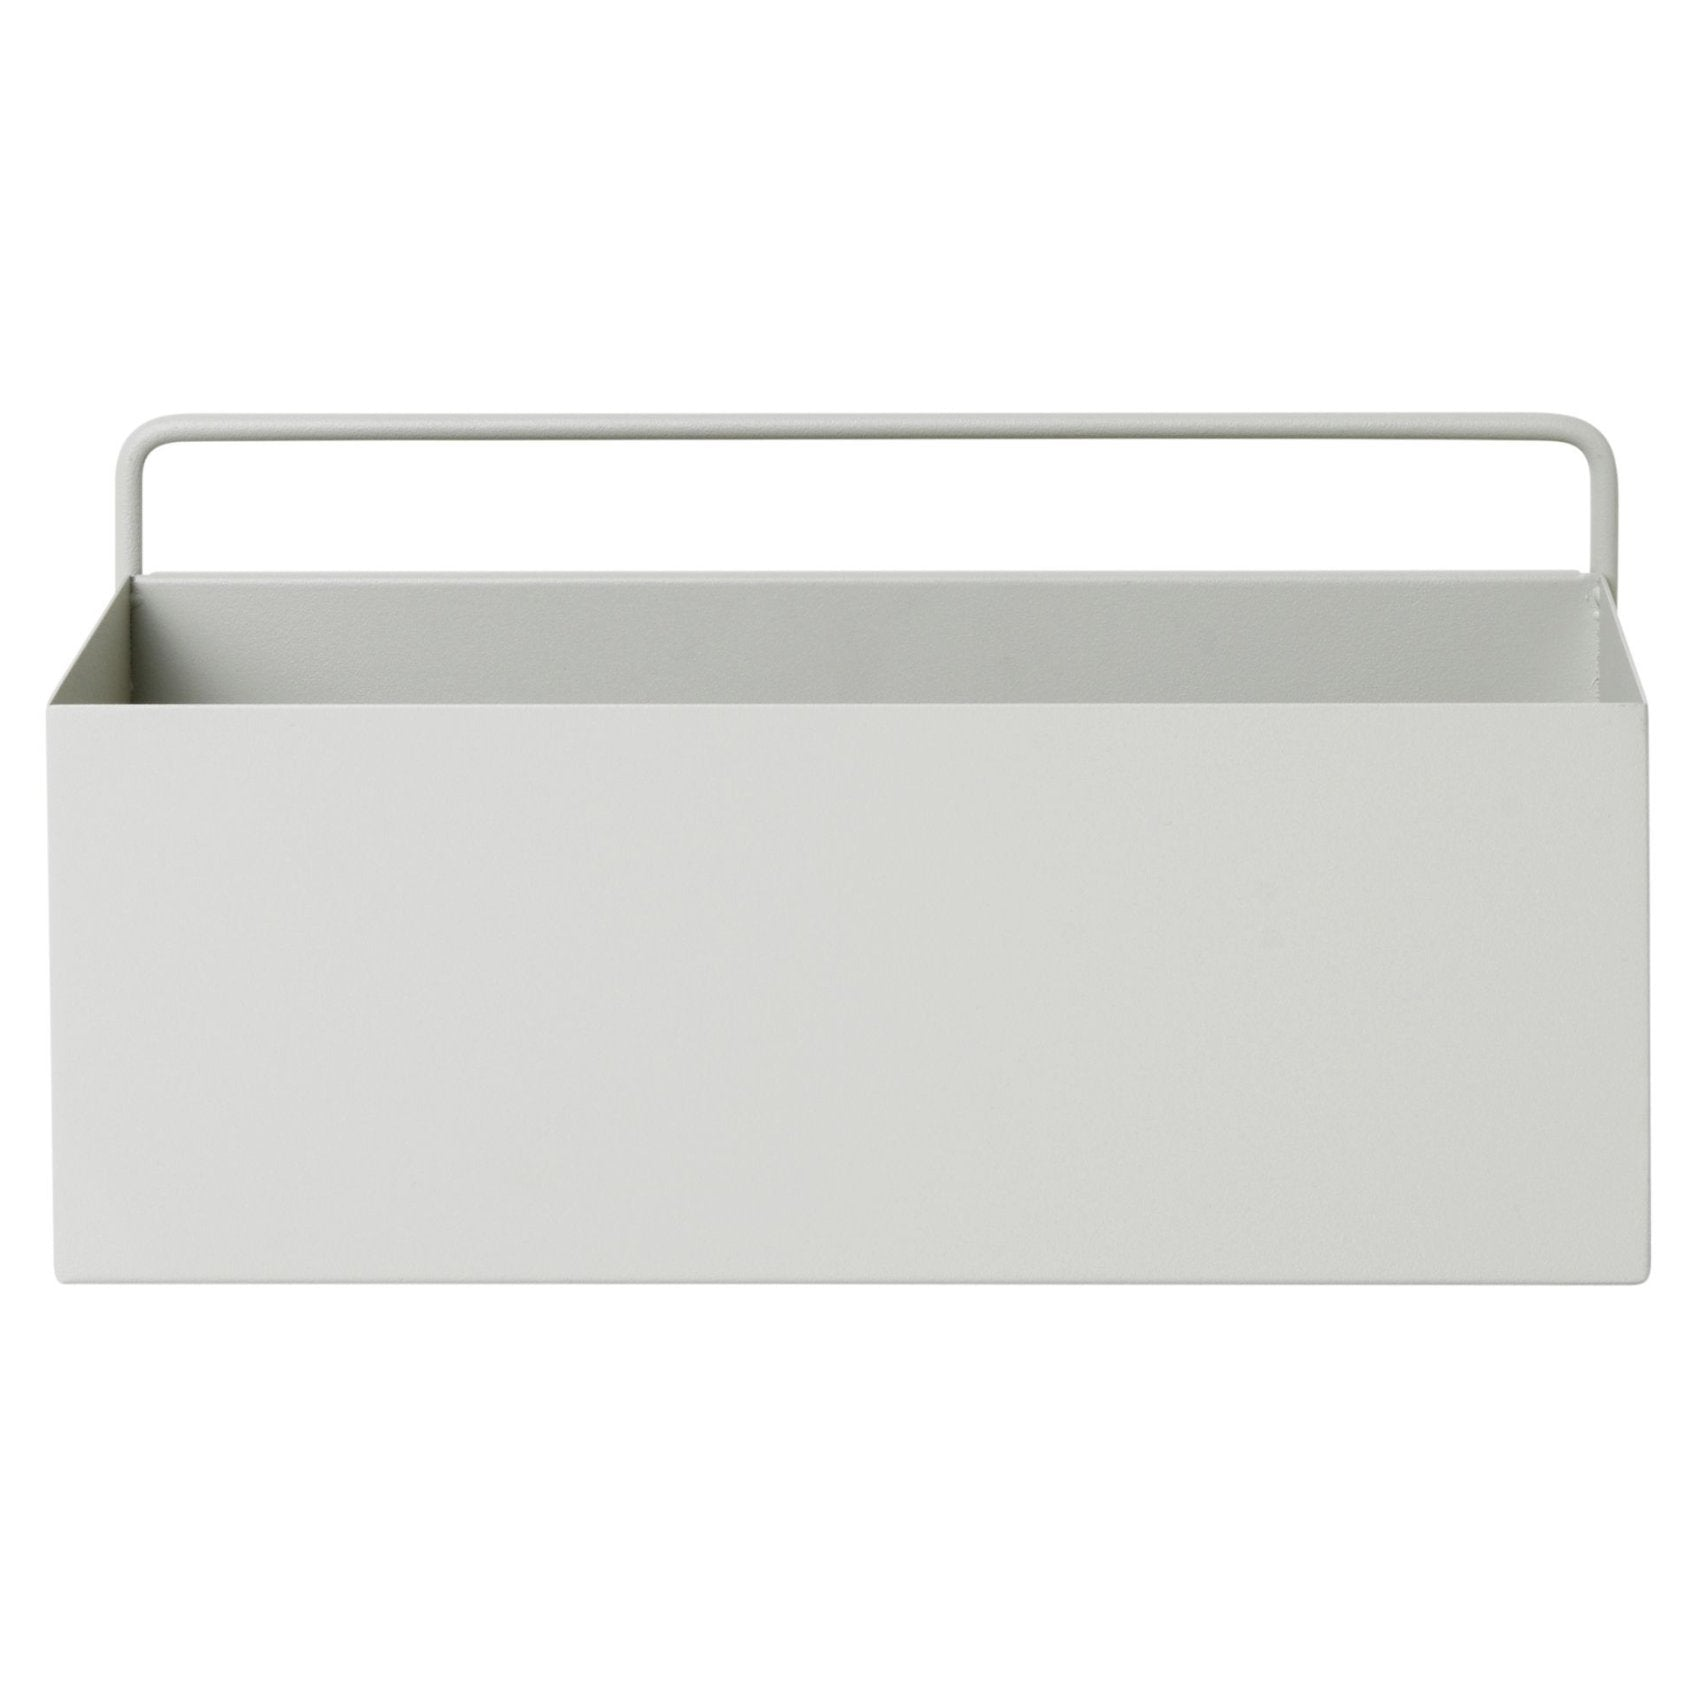 Rectangle Wall Box in Light Grey design by Ferm Living